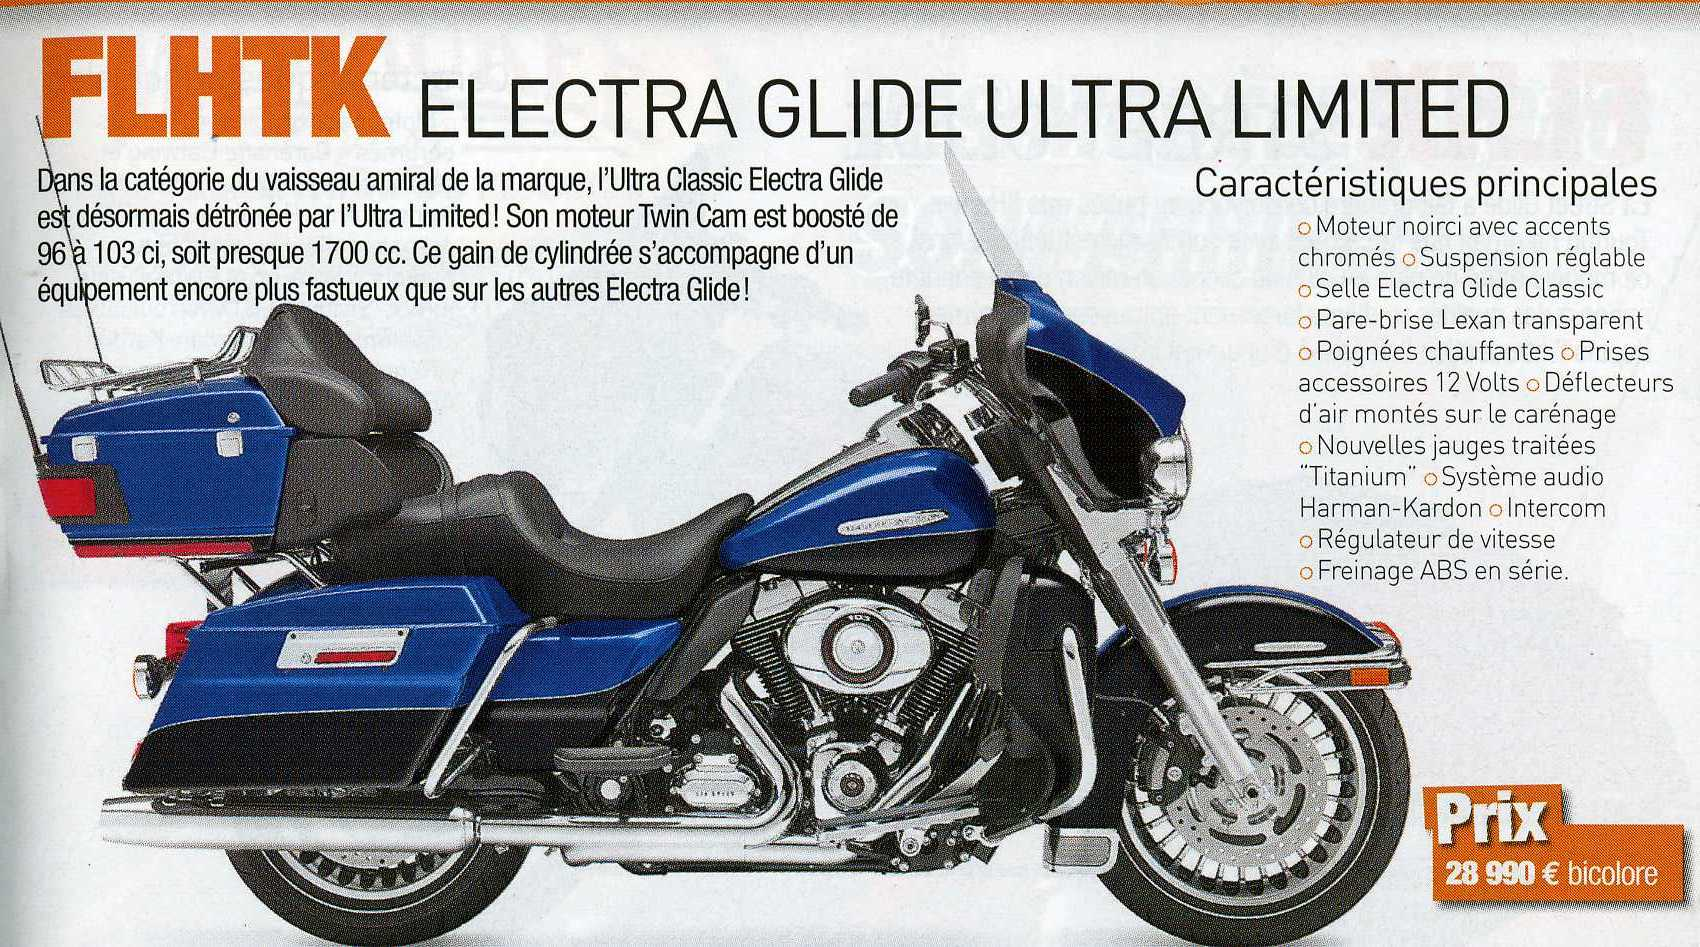 Electra Glide in RTL Autowereld